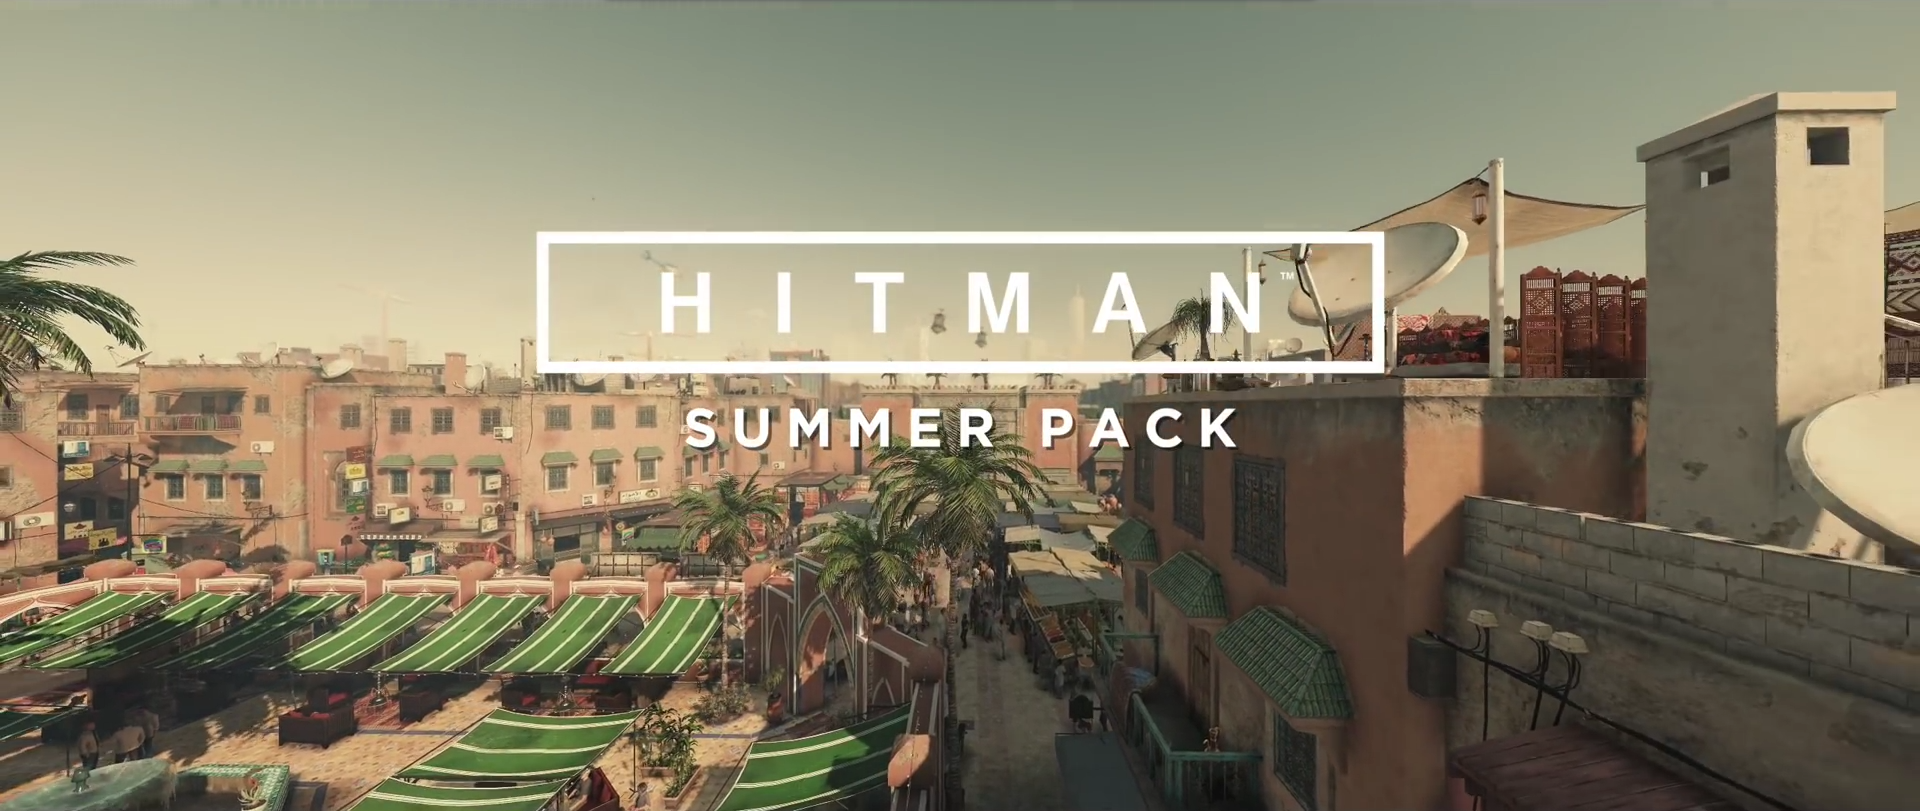 hitman_summer_pack.PNG